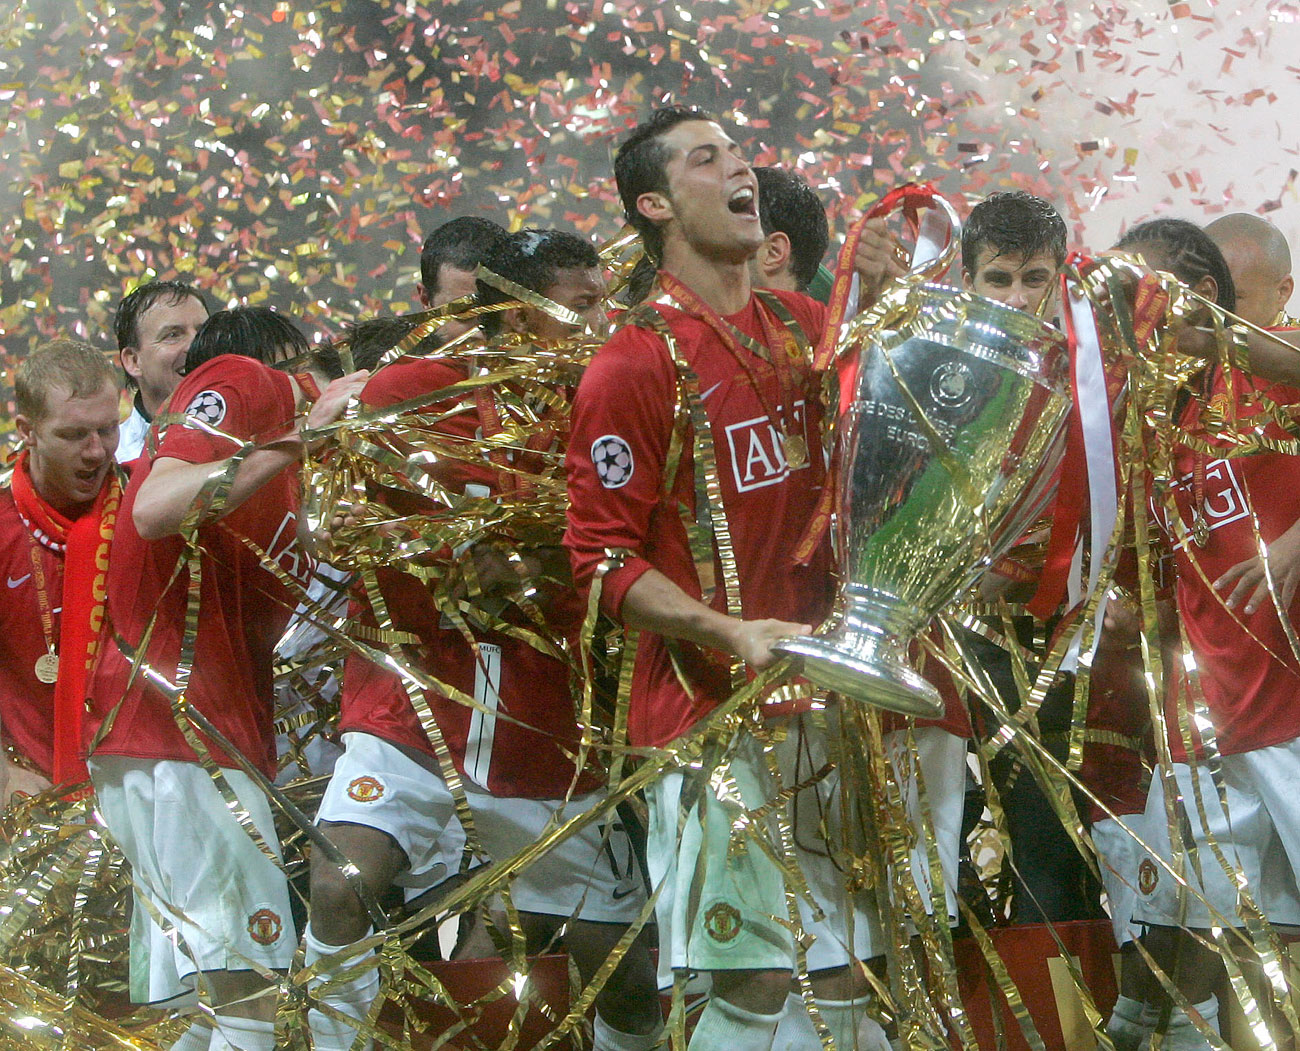 For the 2008 UEFA Champions League final, officials laid out natural grass instead, but shortly after the match they reverted back to the good old artificial carpet. // Manchester United's Cristiano Ronaldo celebrates with the trophy at the end of the Champions League final soccer match at the Luzhniki Stadium in Moscow.